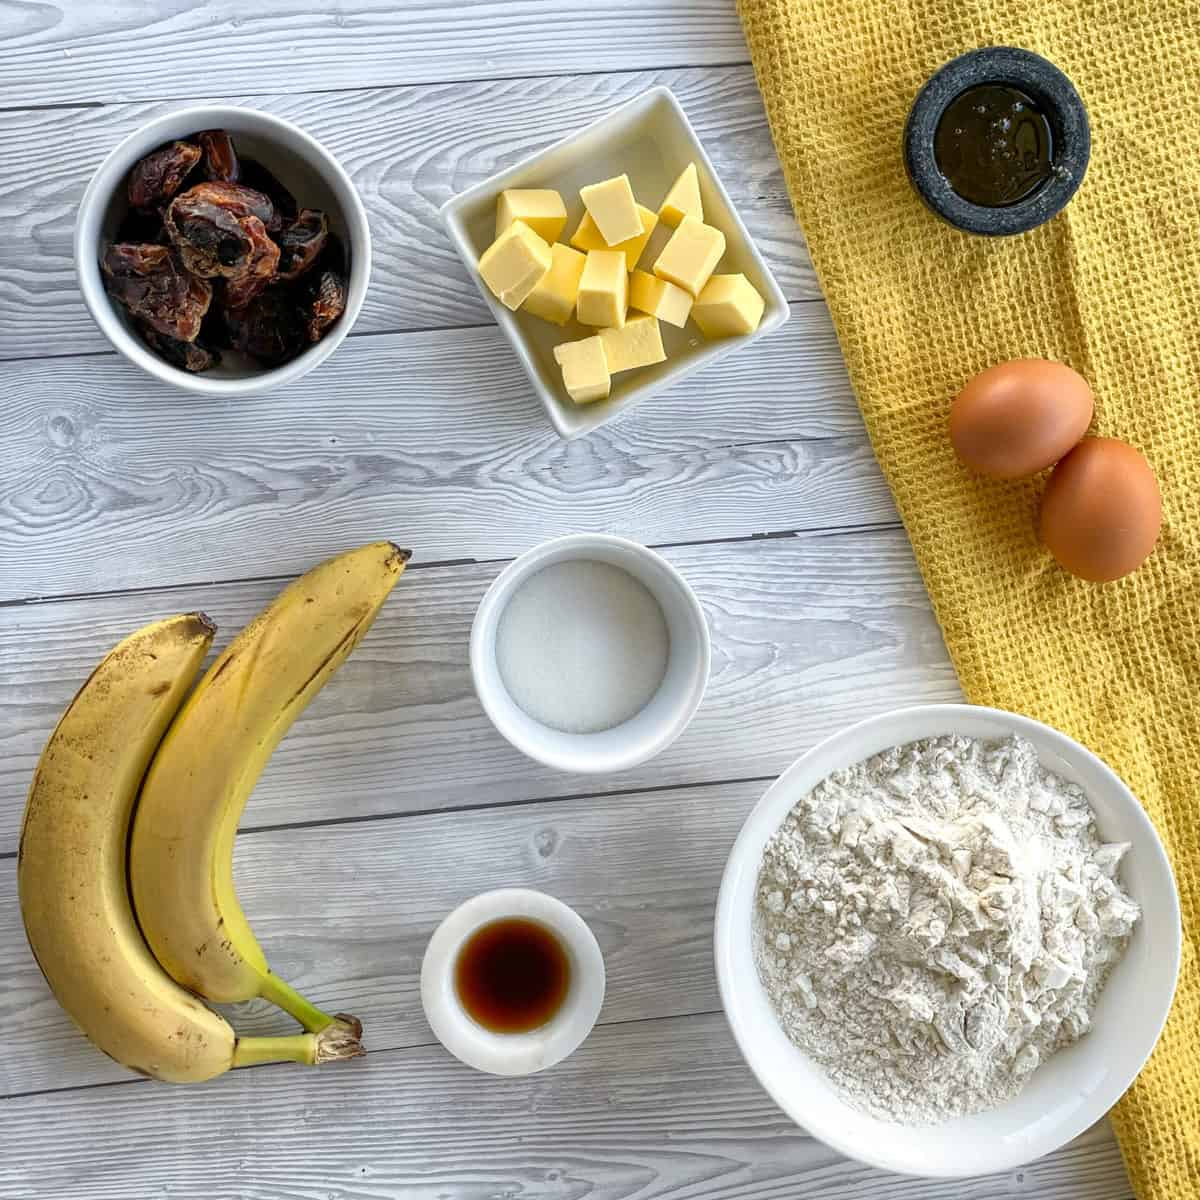 Ingredients required for a Banana & Date Loaf see the recipe card